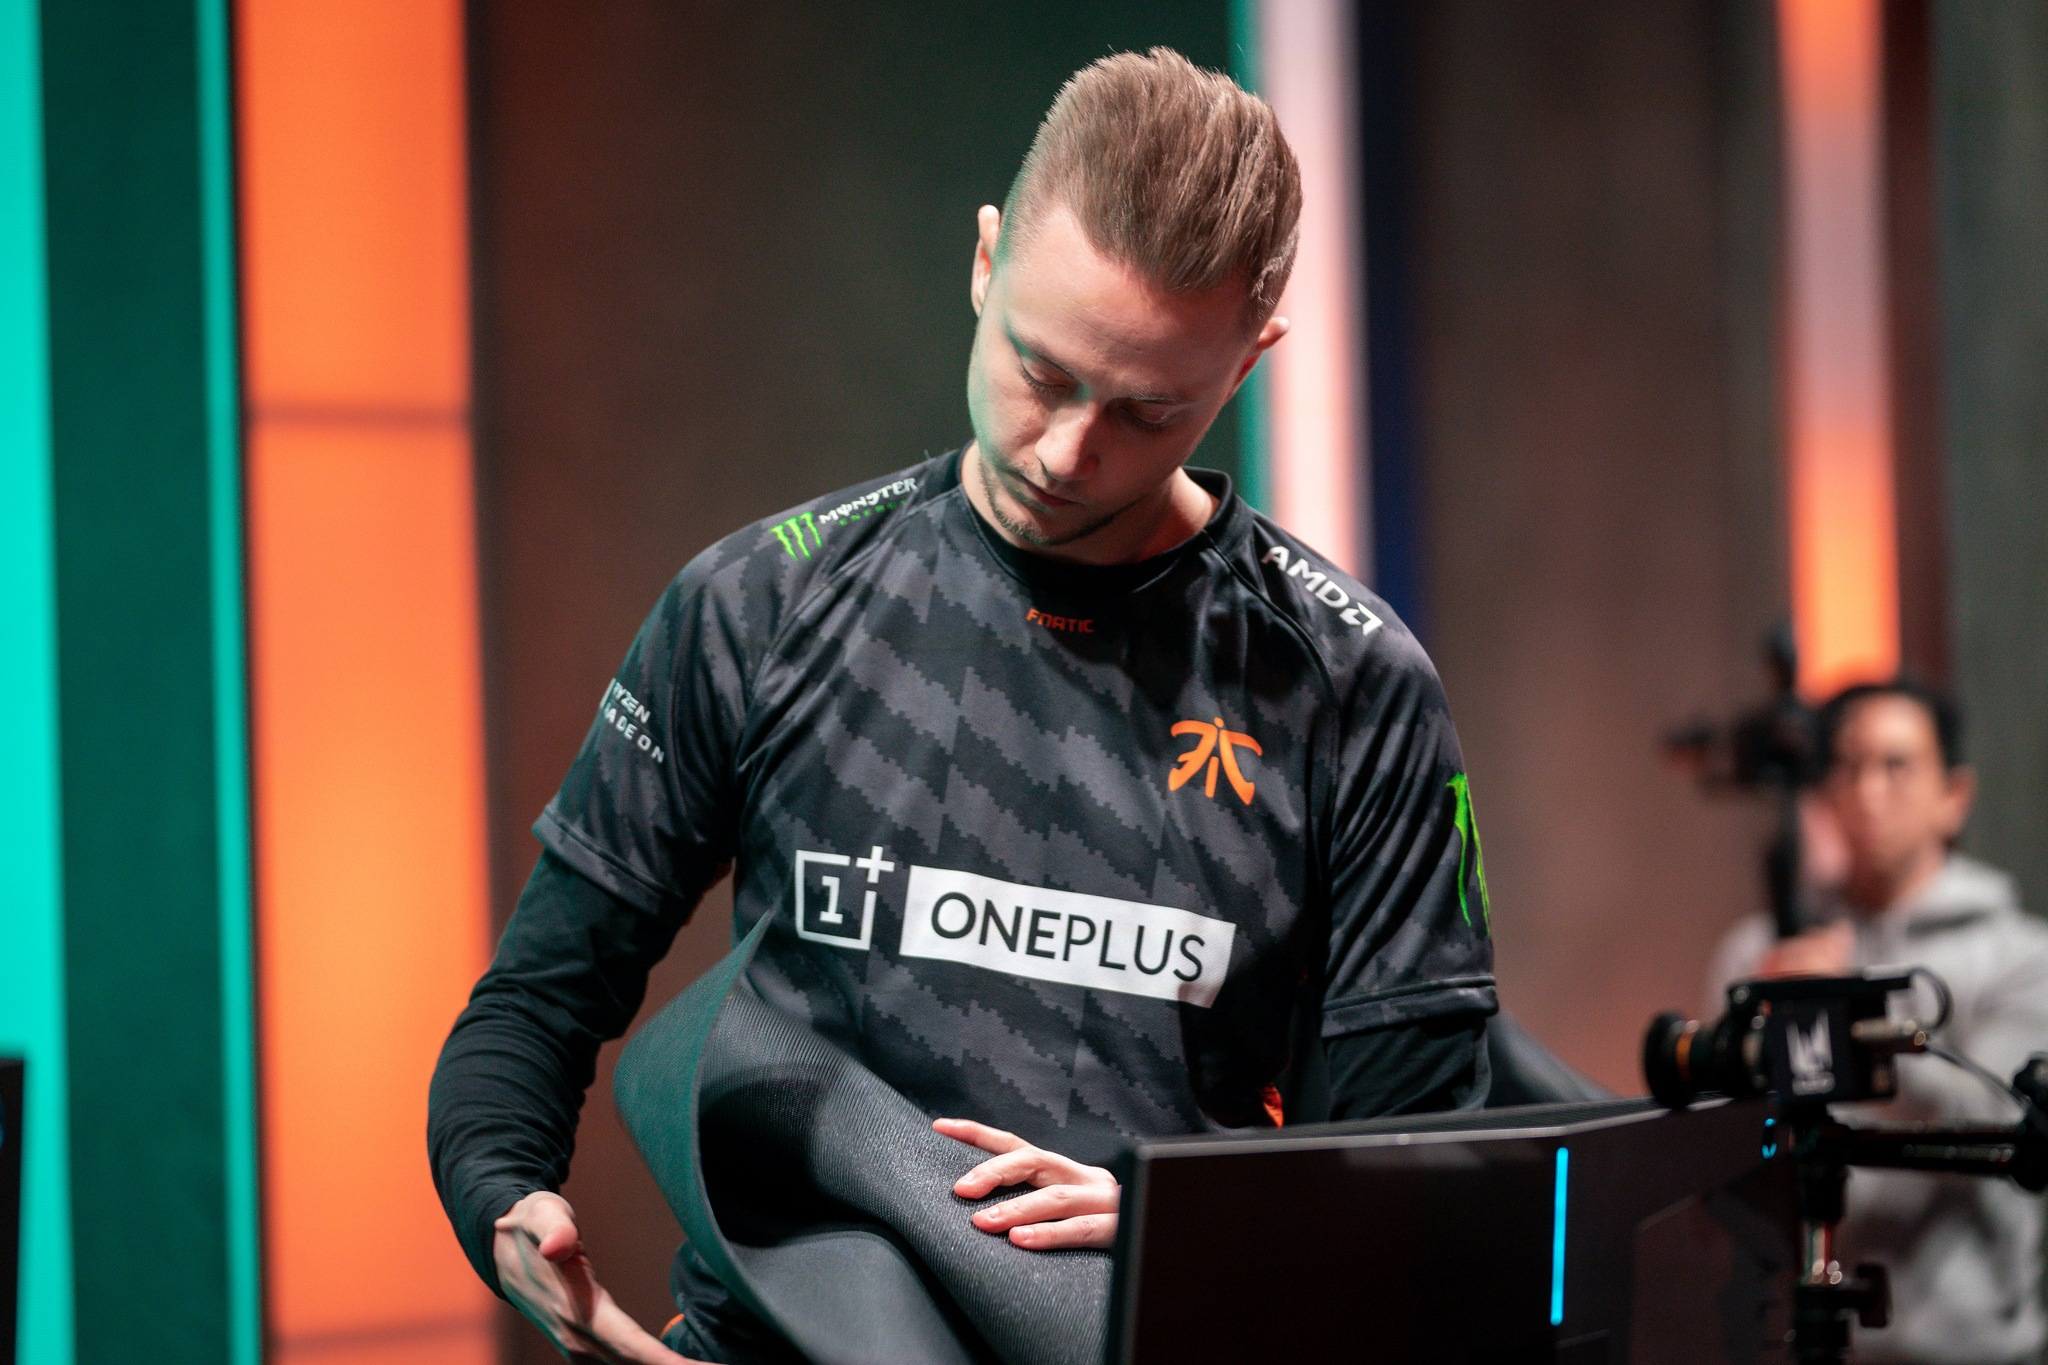 Fnatic will face Origen in the LEC 2019 semi-finals